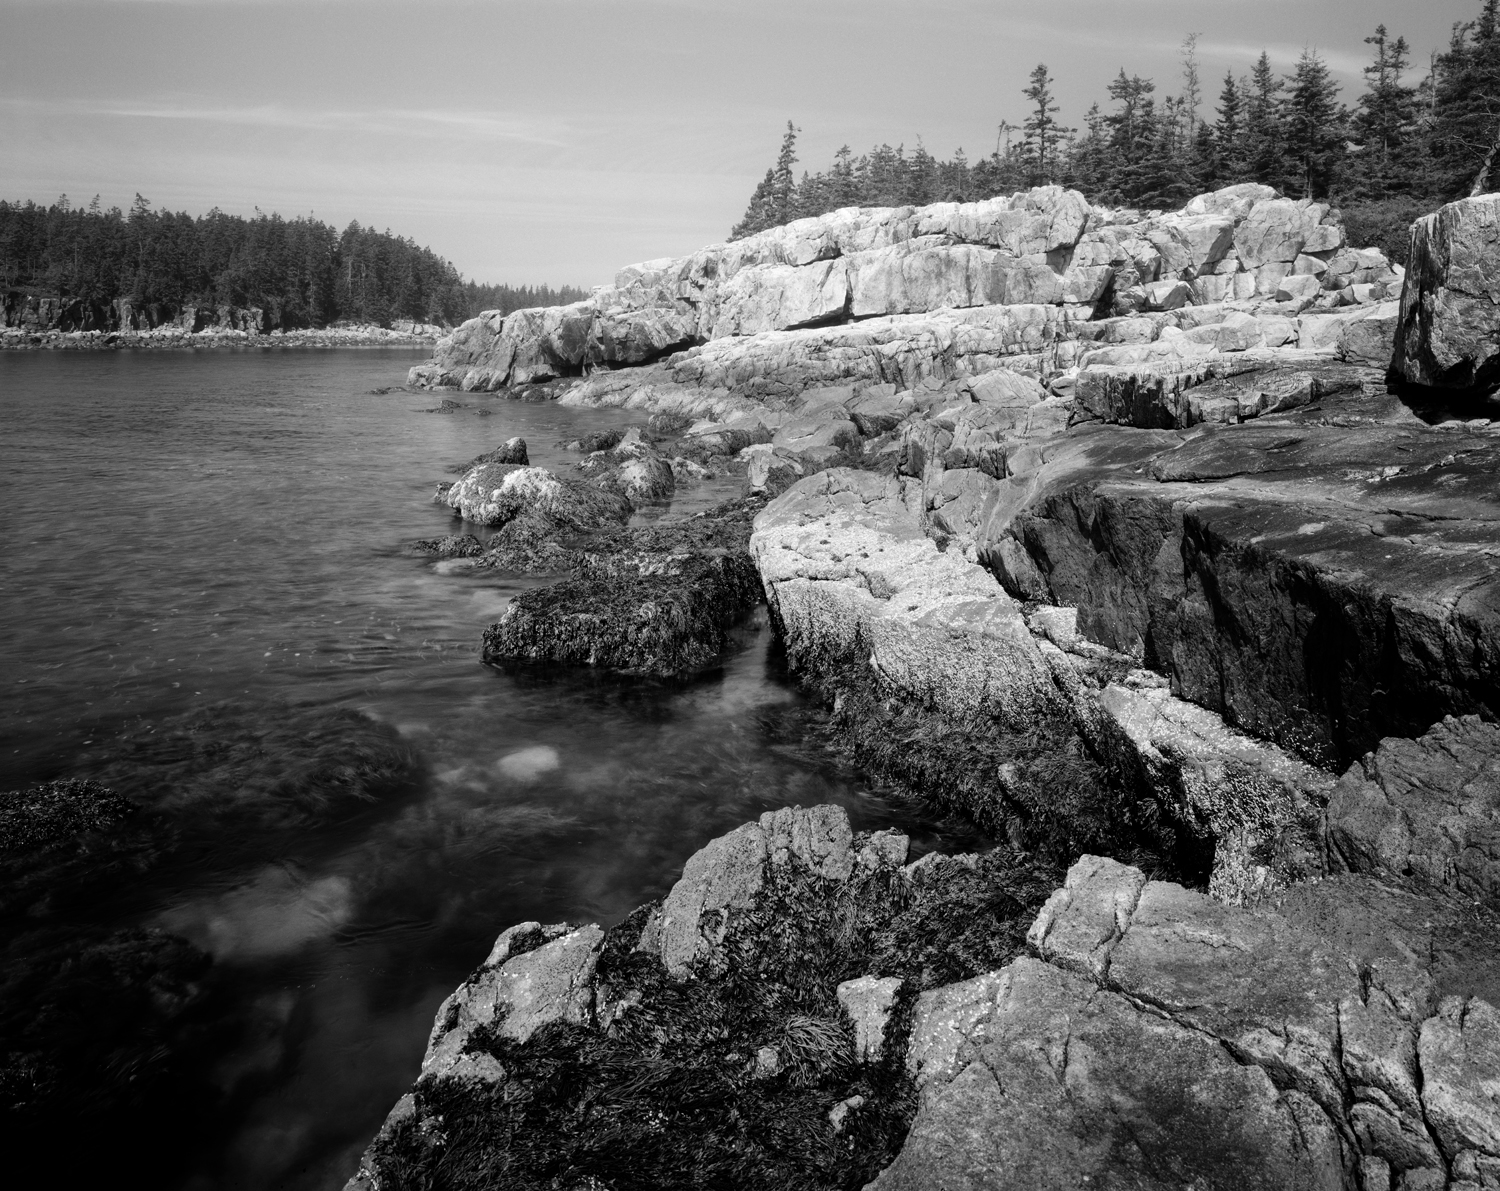 Ship Harbor Inlet. Acadia National Park, Maine. 2011